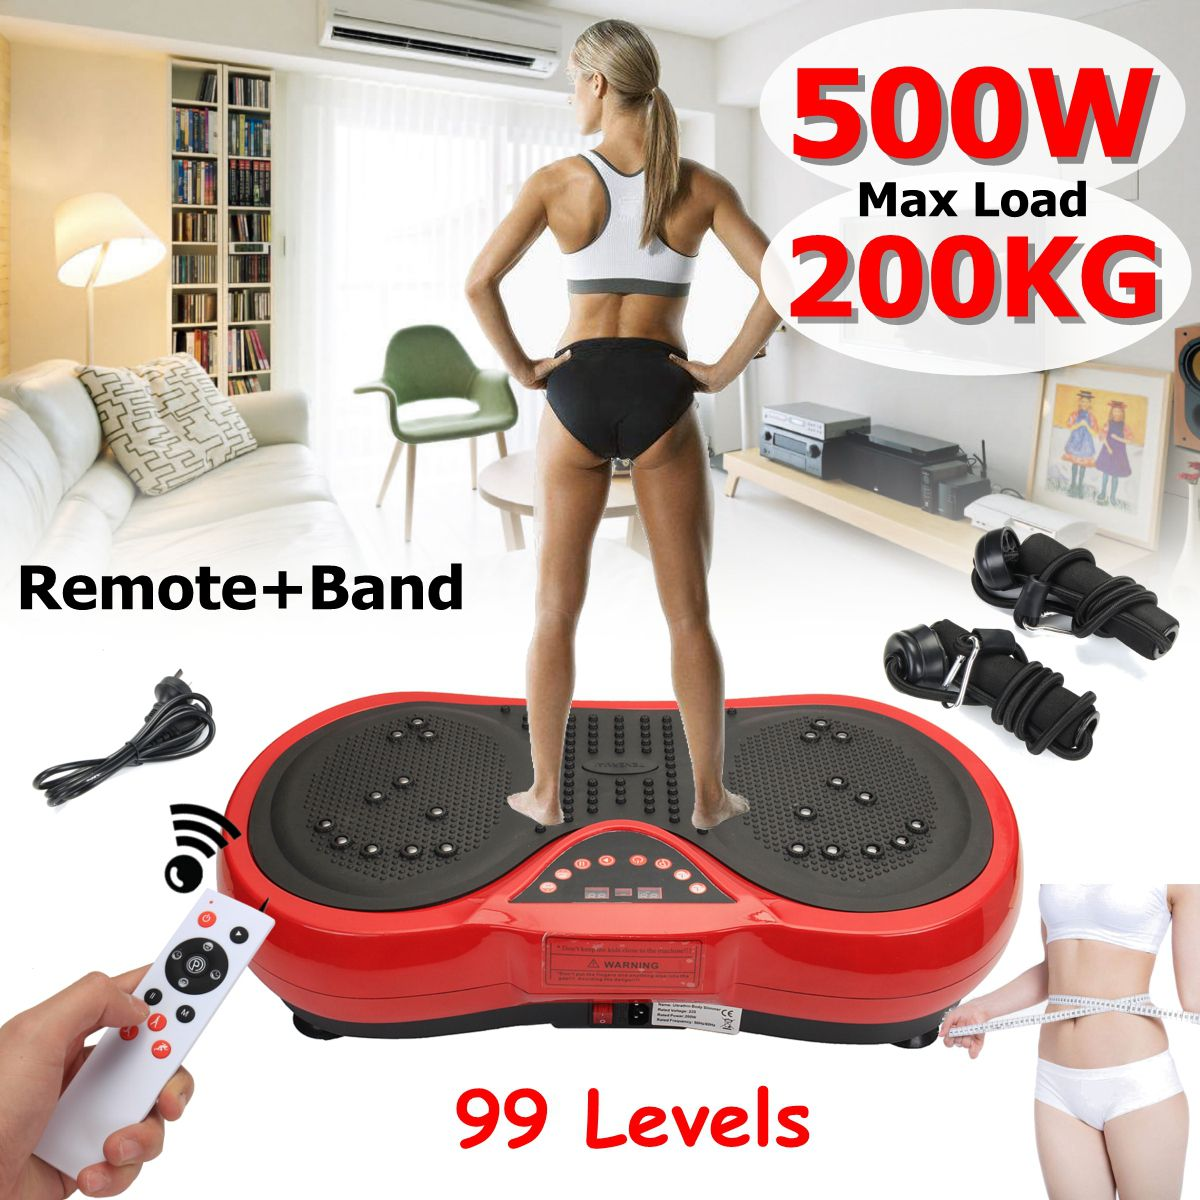 Exercise Fitness Slim Vibration Machine Trainer Plate Platform Body Shaper with Resistance Bands for Home + remote + b and